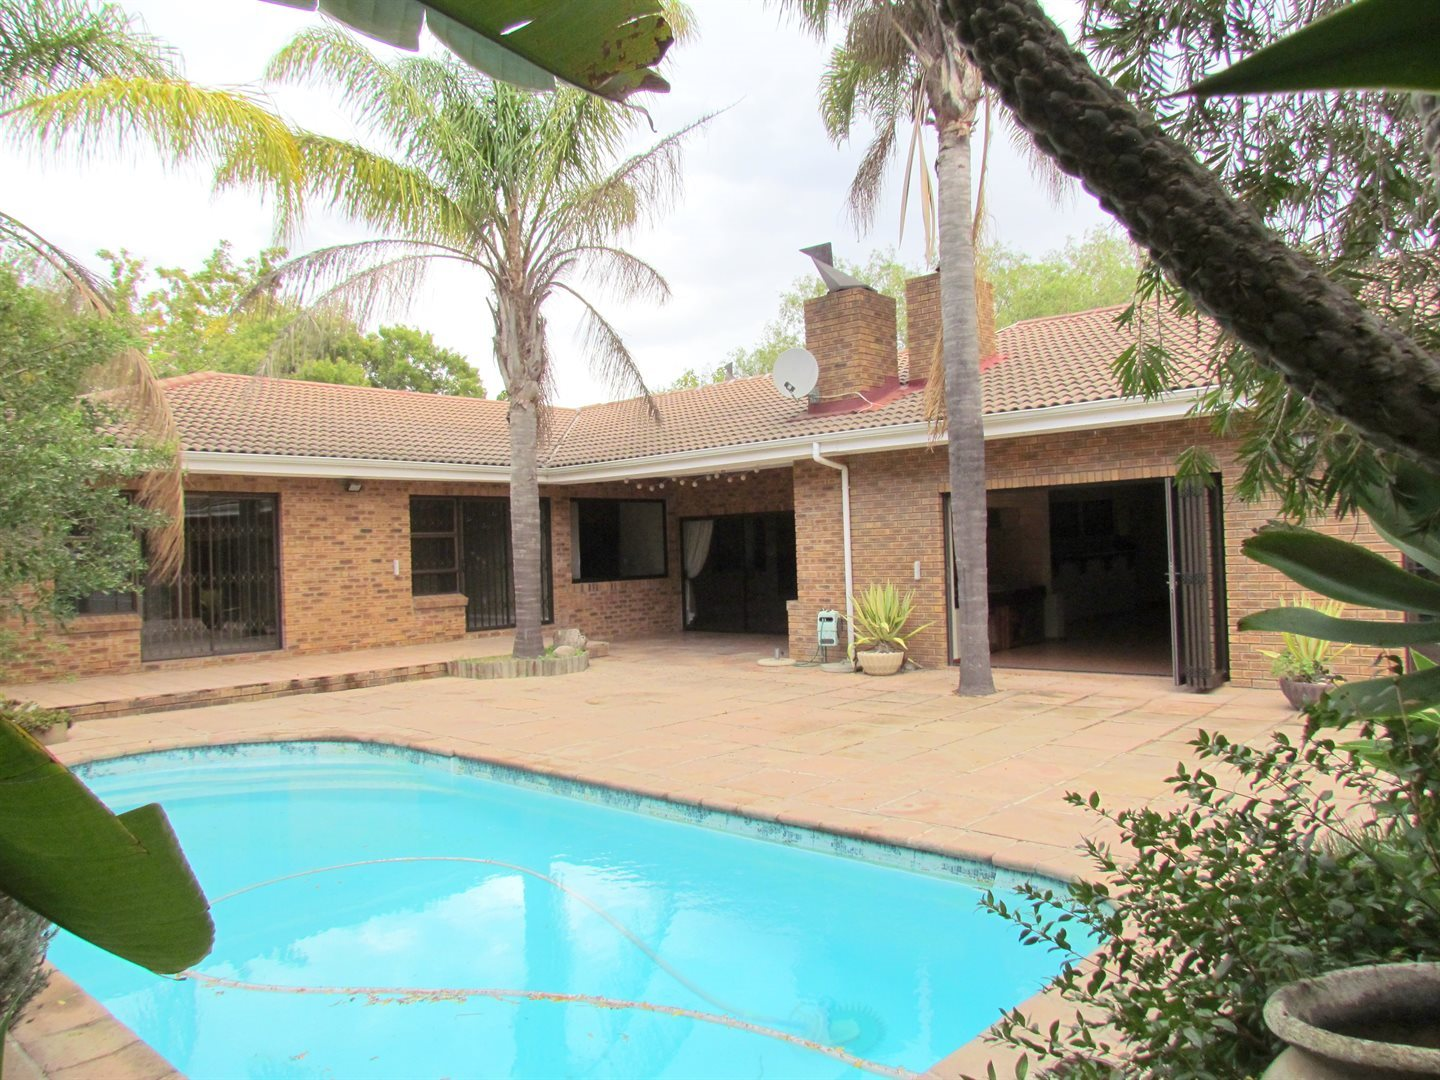 Property and Houses for sale in Paradyskloof, House, 3 Bedrooms - ZAR 4,700,000